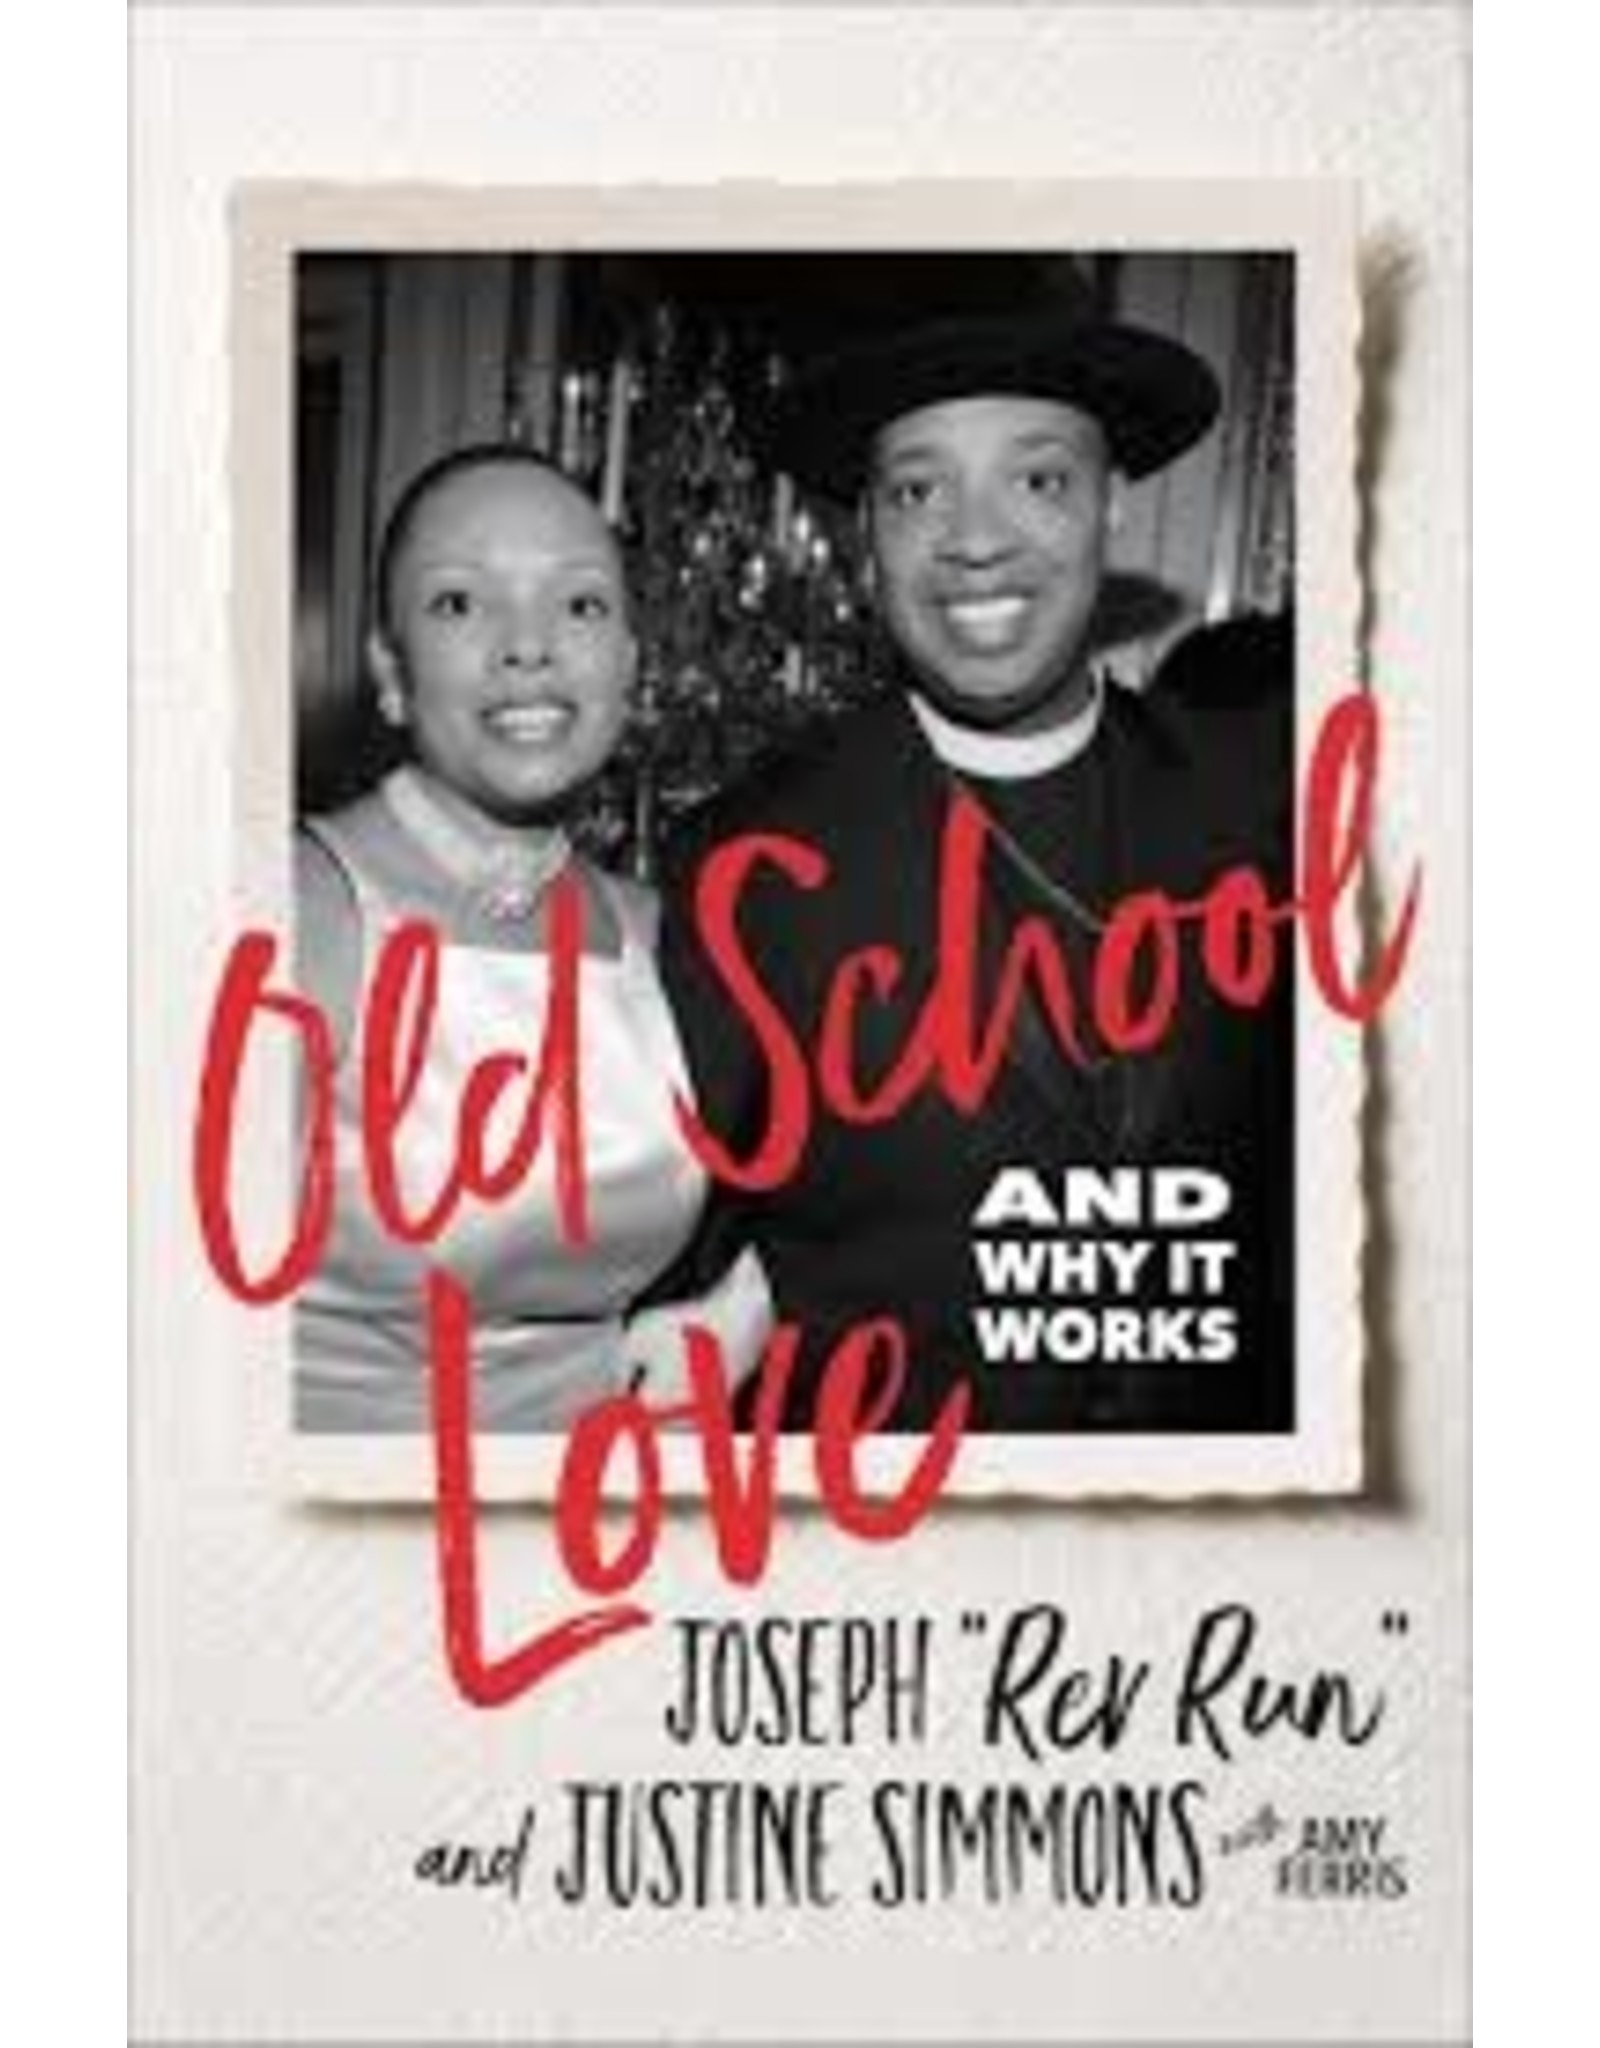 Books Old School Love by Joseph(Rev Run) & Justine Simmons